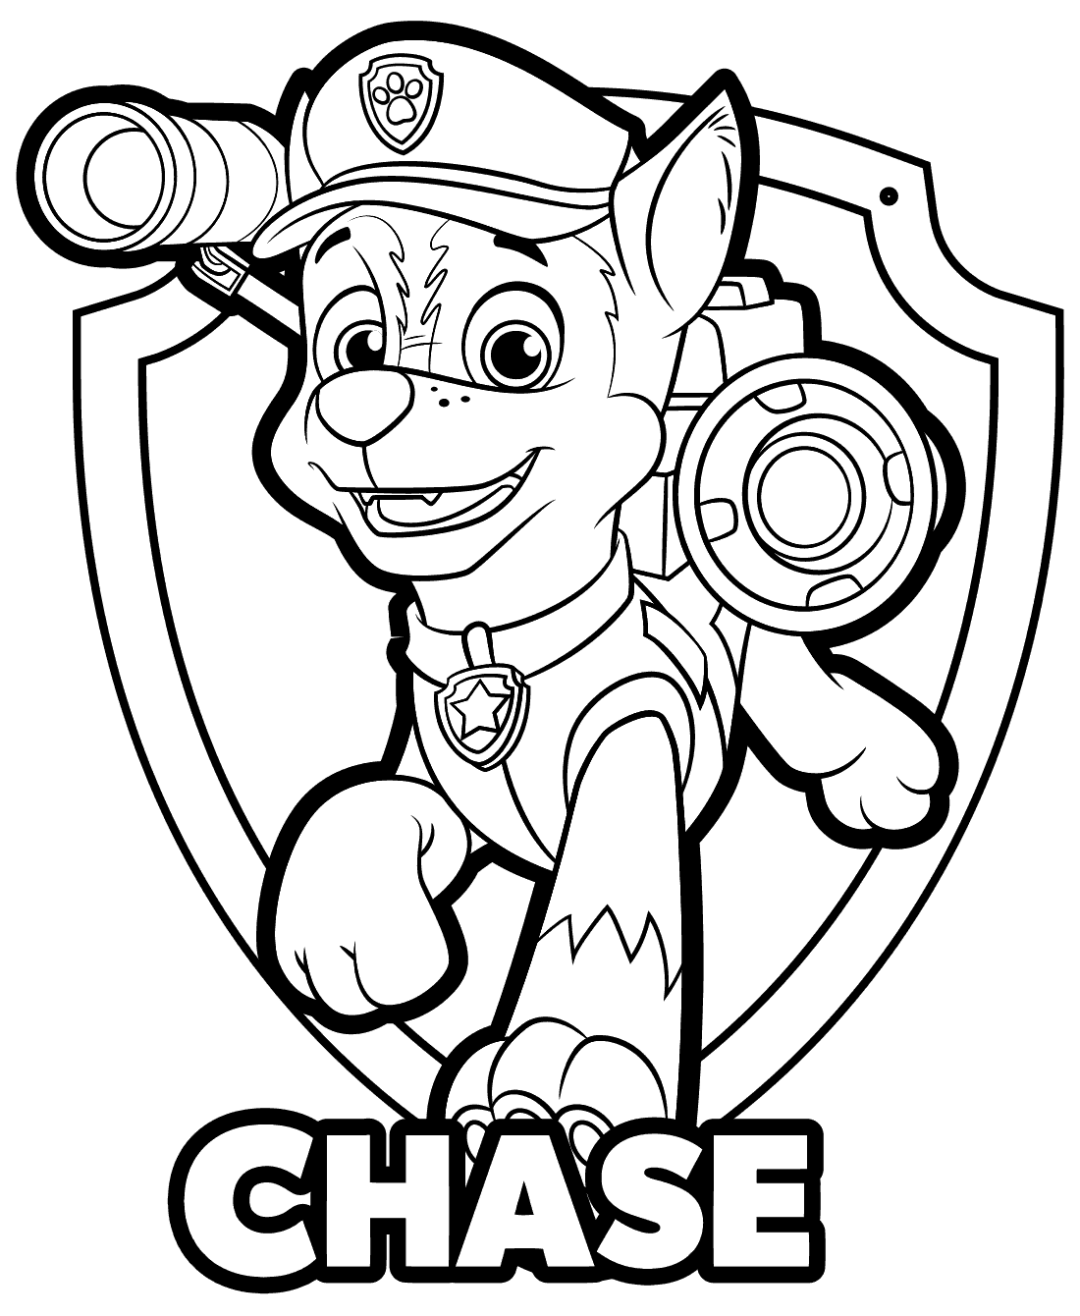 paw patrol coloring characters paw patrol coloring pages paw patrol coloring pages paw patrol paw coloring characters